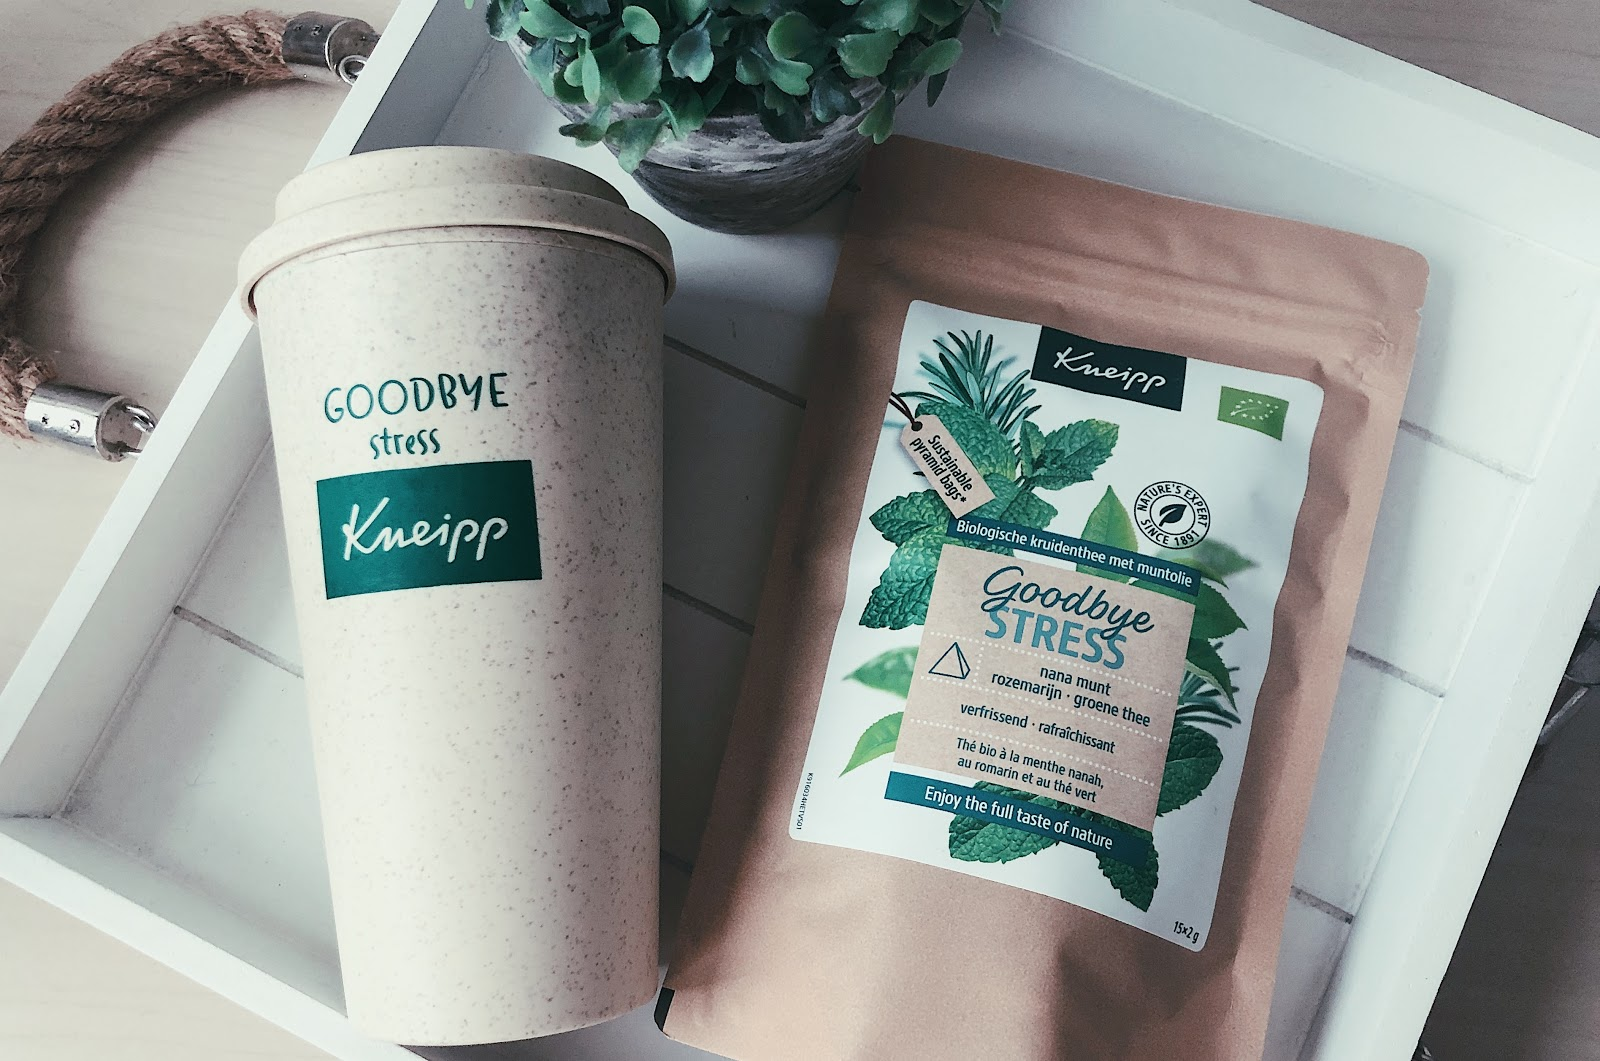 Kneipp 'Goodbye Stress'